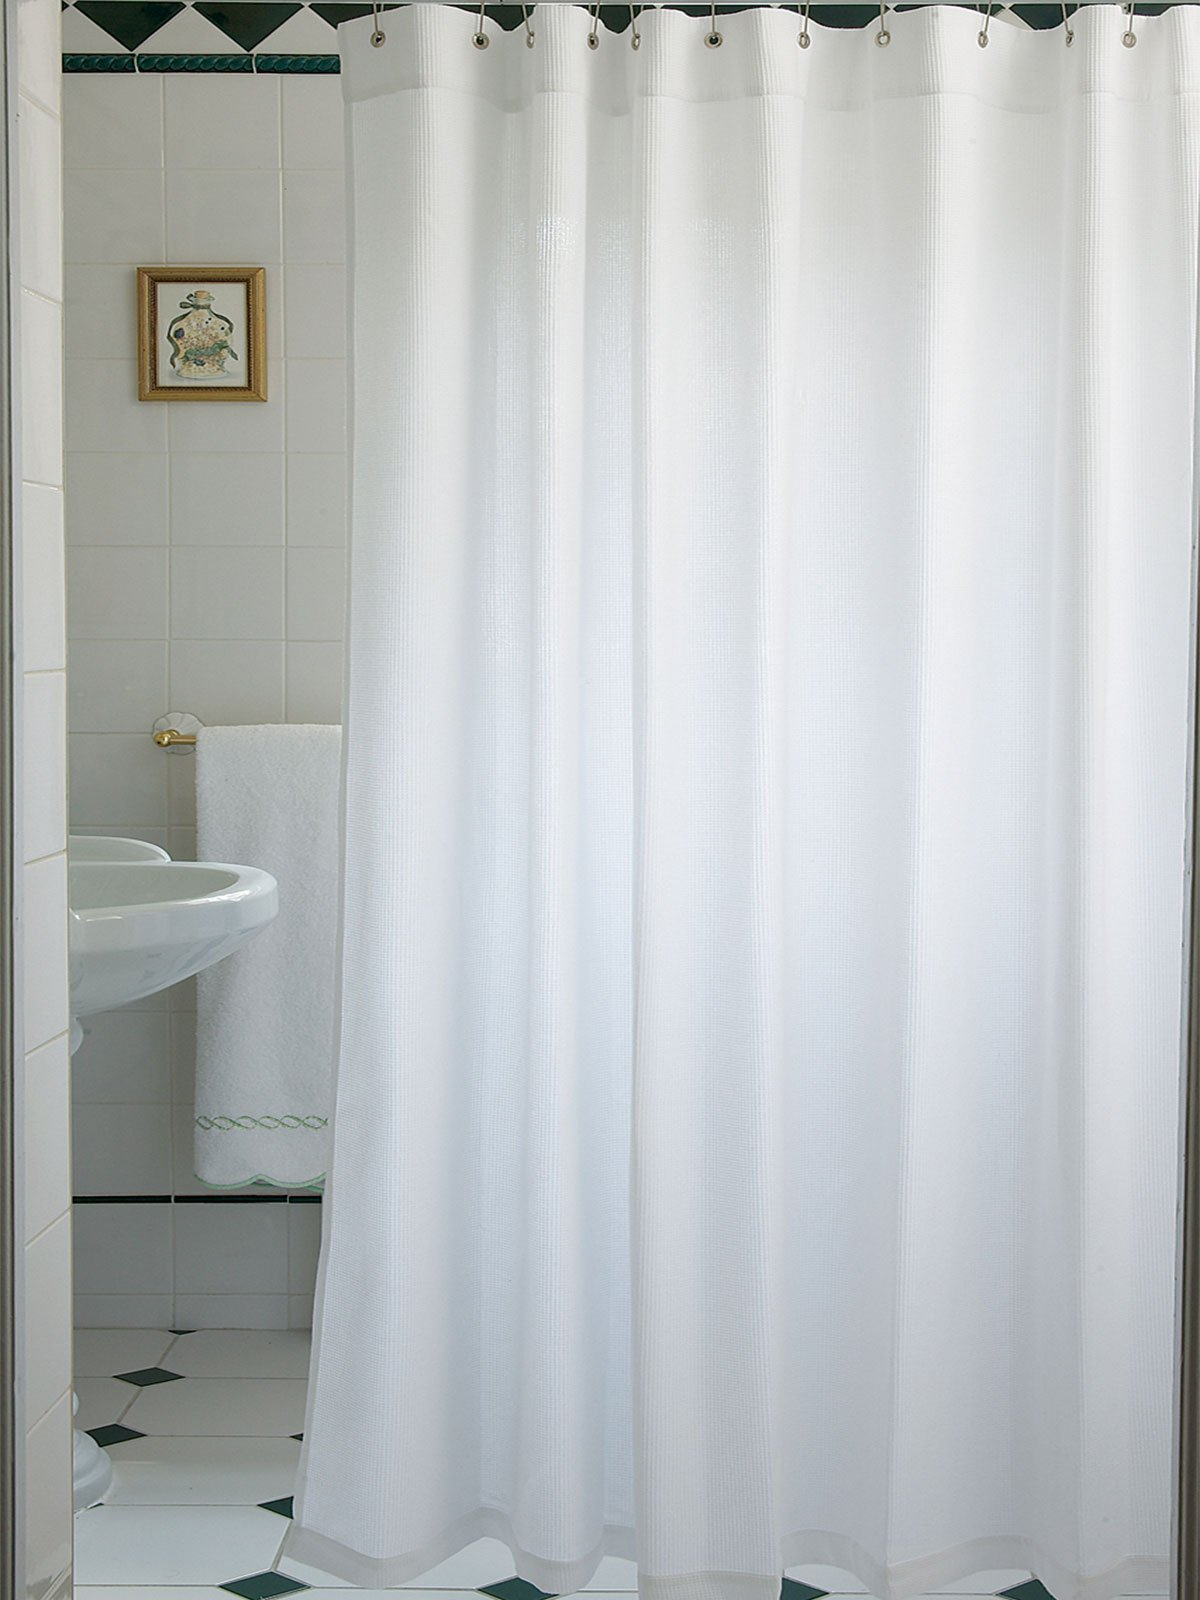 curtains hotel shower bed pdx reviews maytex border white bath curtain waffle wayfair